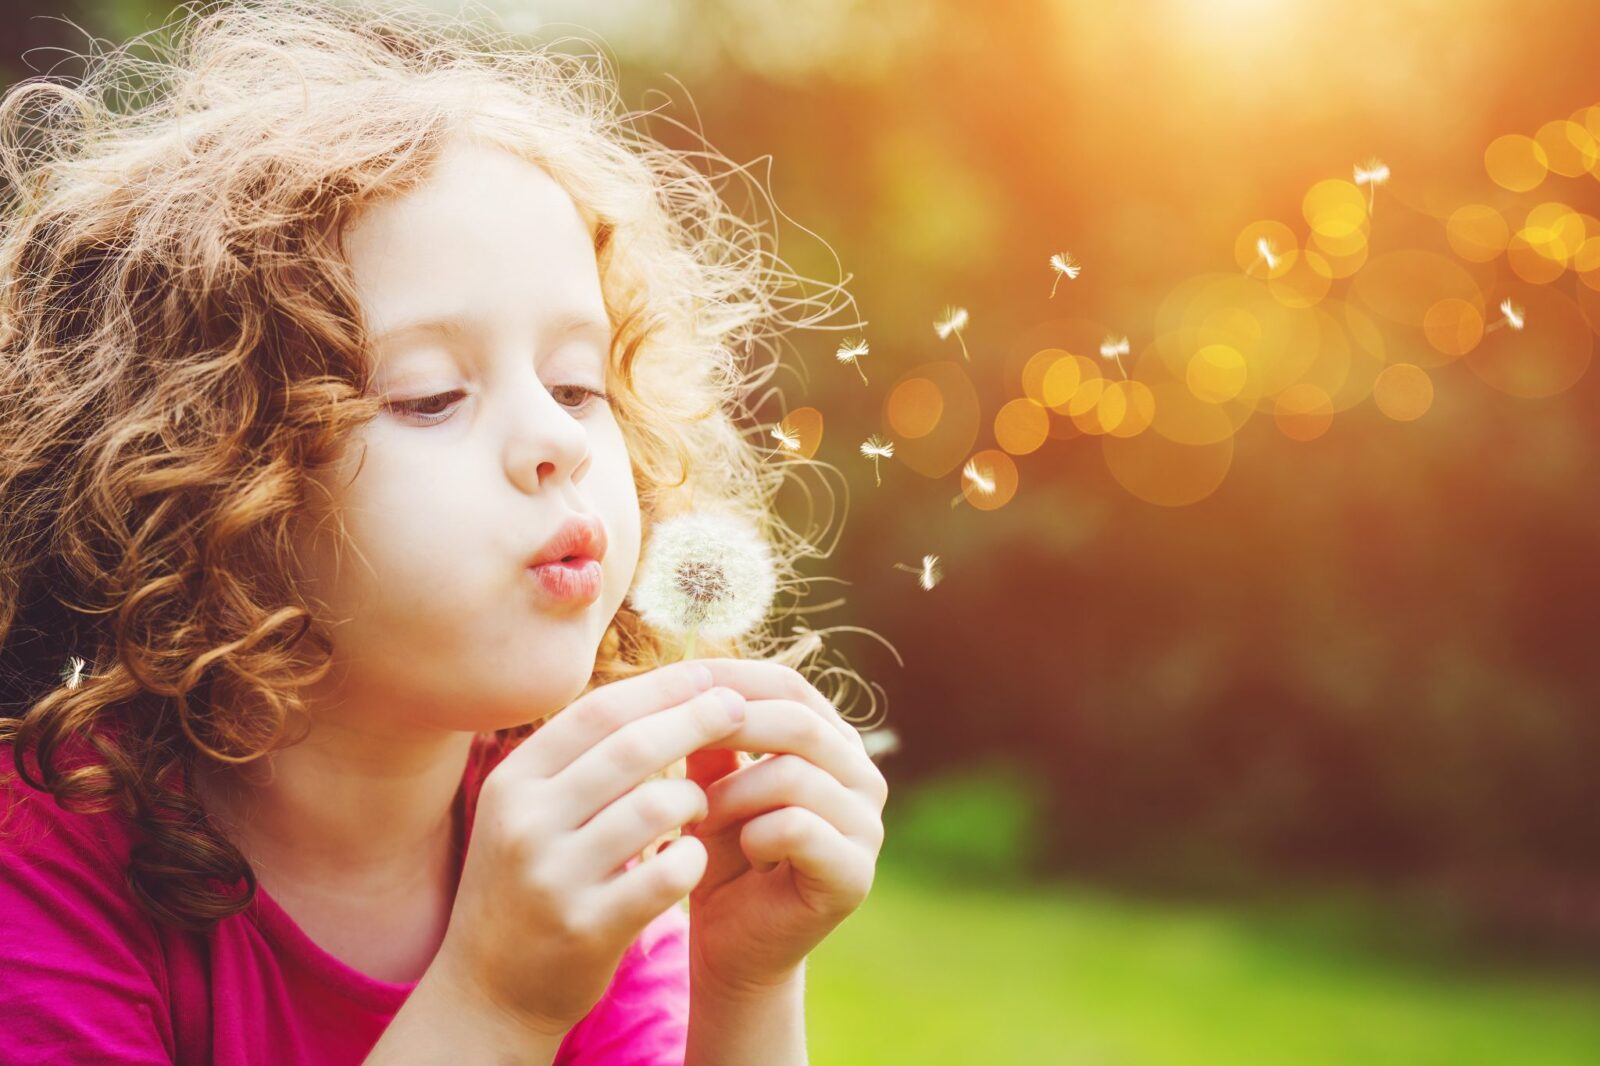 mindfulness activities for kids - breathing